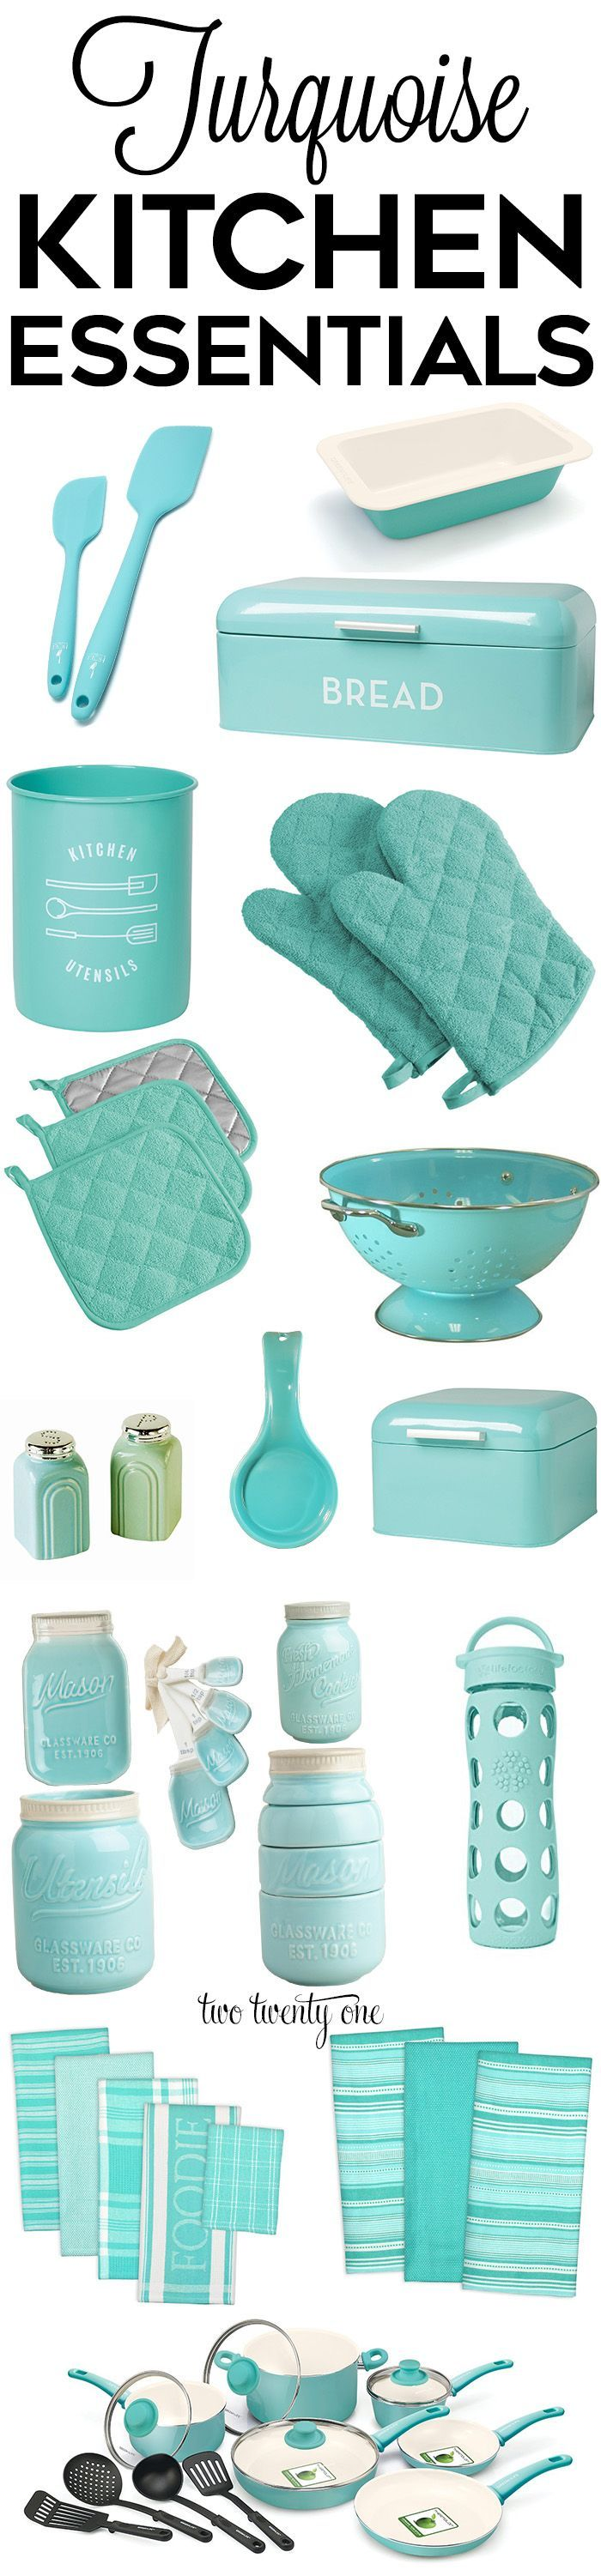 Turquoise Kitchen Decor & Appliances | Mermaid Decor | Pinterest ...